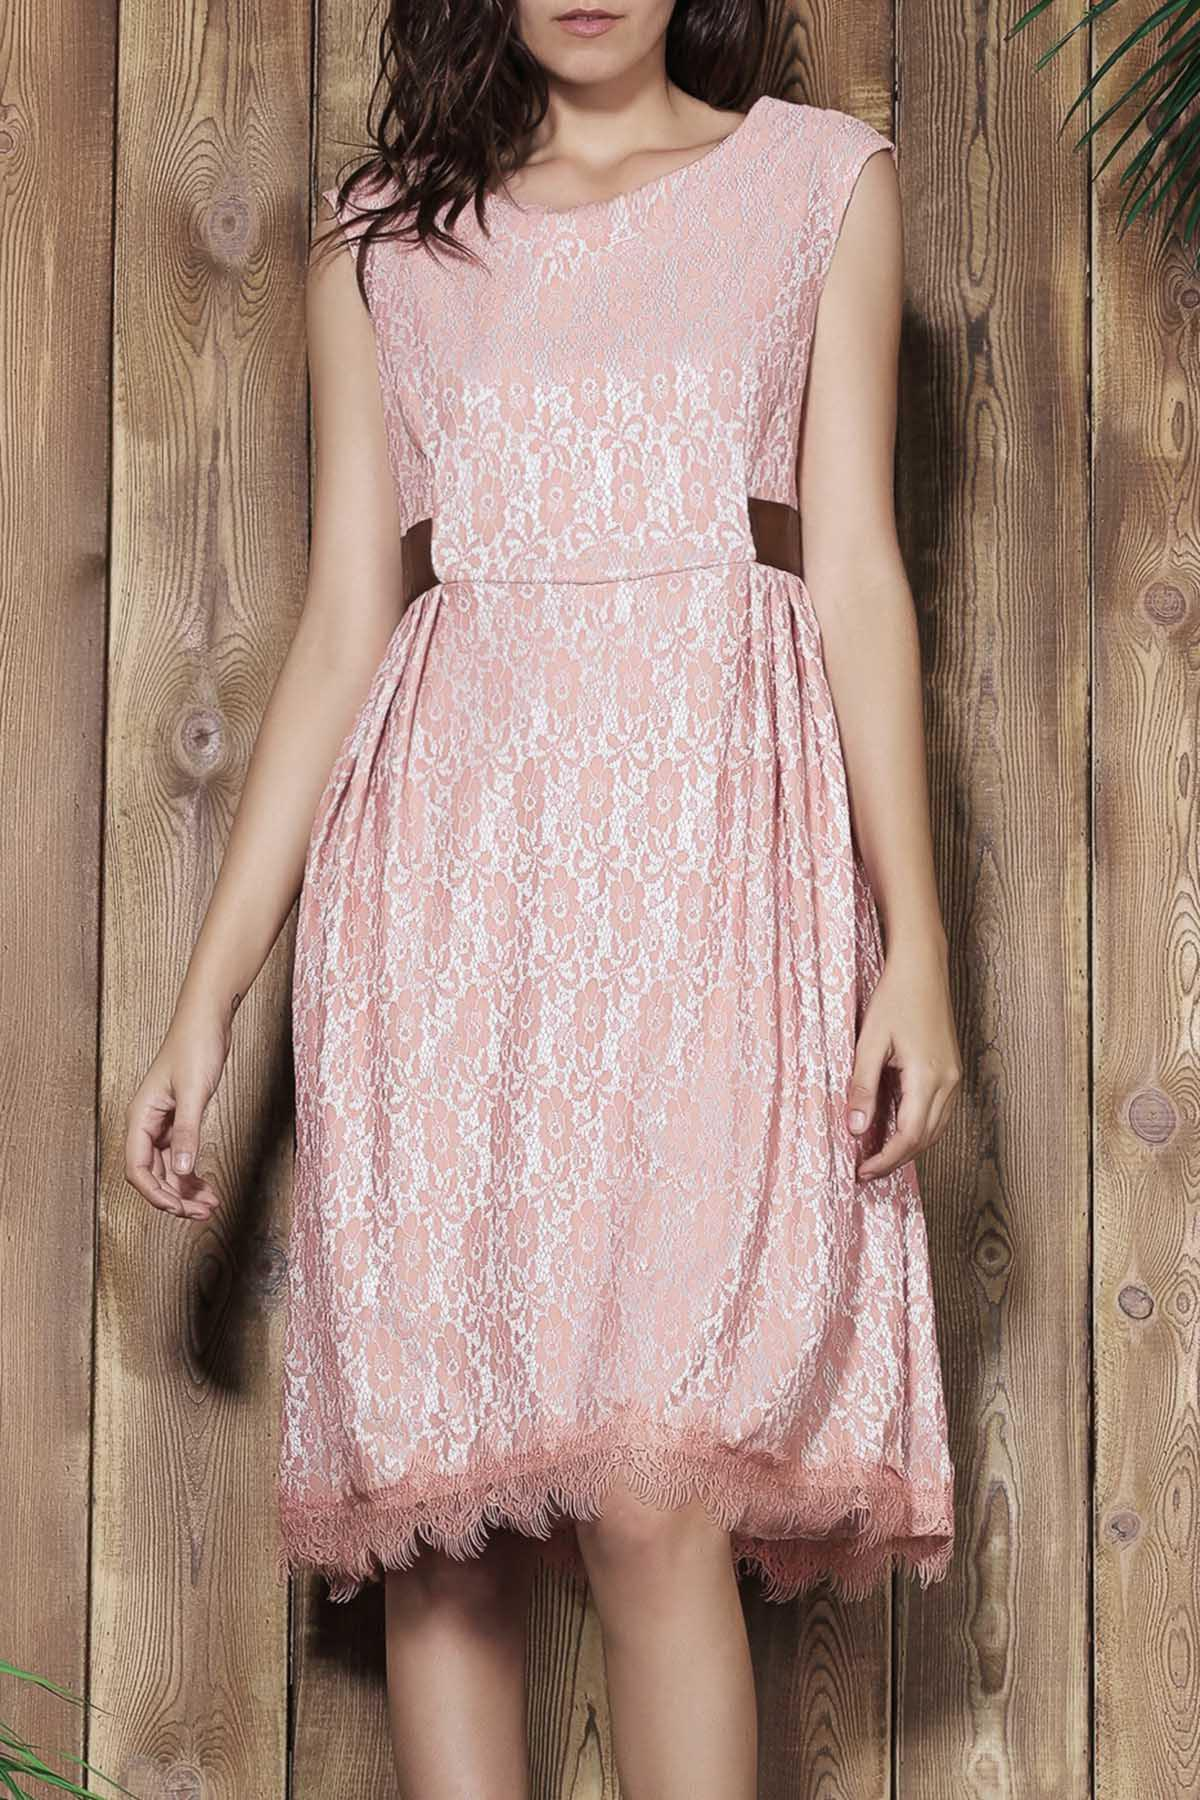 Vintage Style Sleeveless Scoop Neck Pink Lace Women's Ball Gown Dress - PINK L